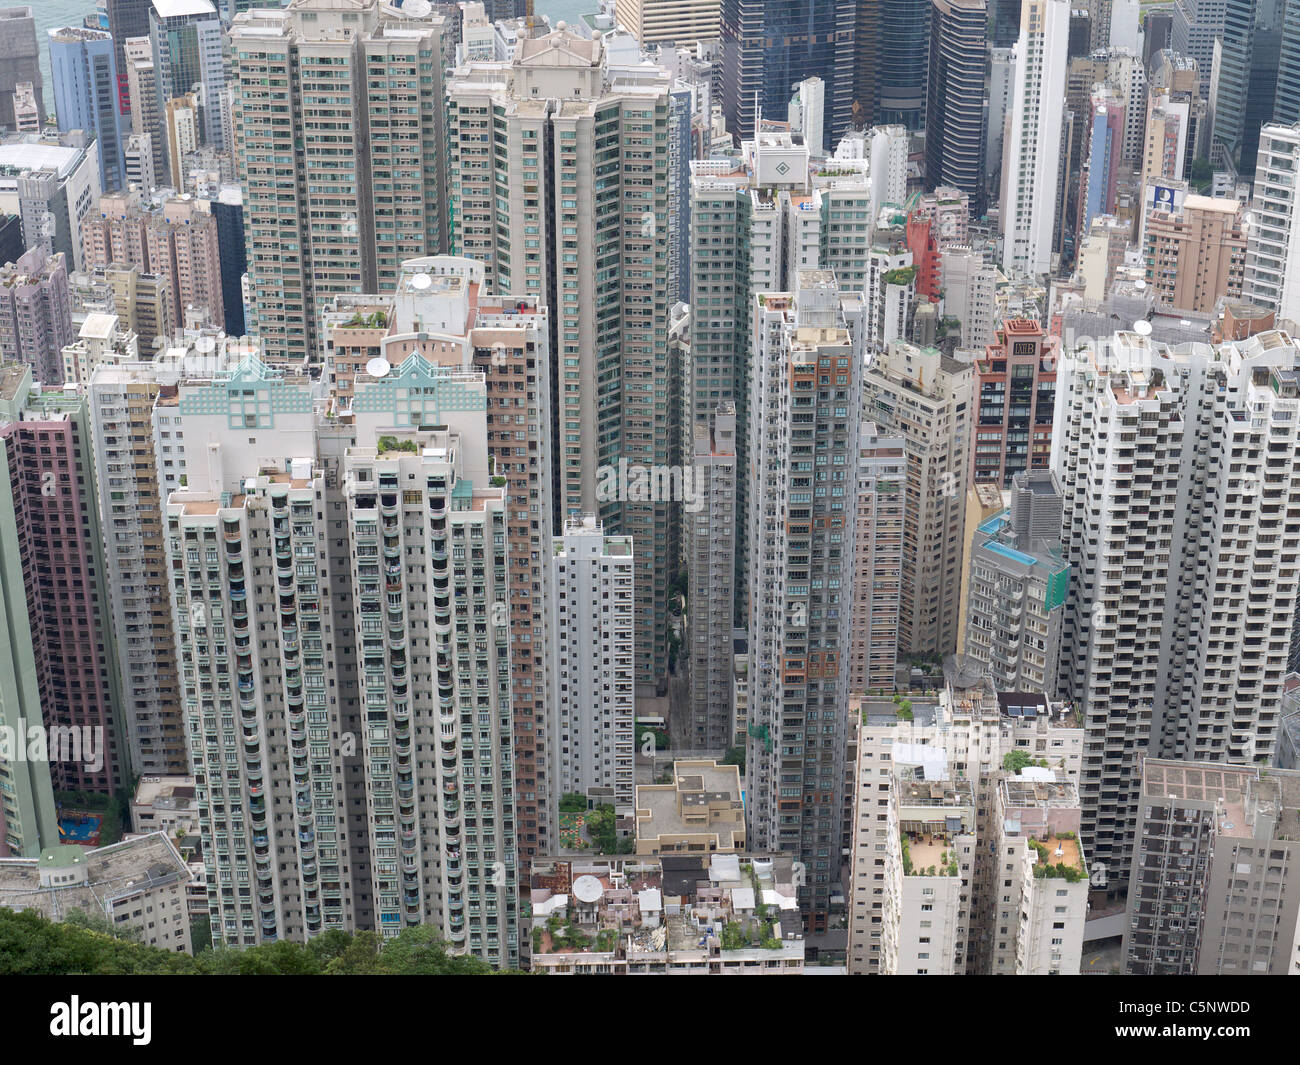 View Looking Down From High Above Tall Hong Kong Apartment Blocks   Stock  Image